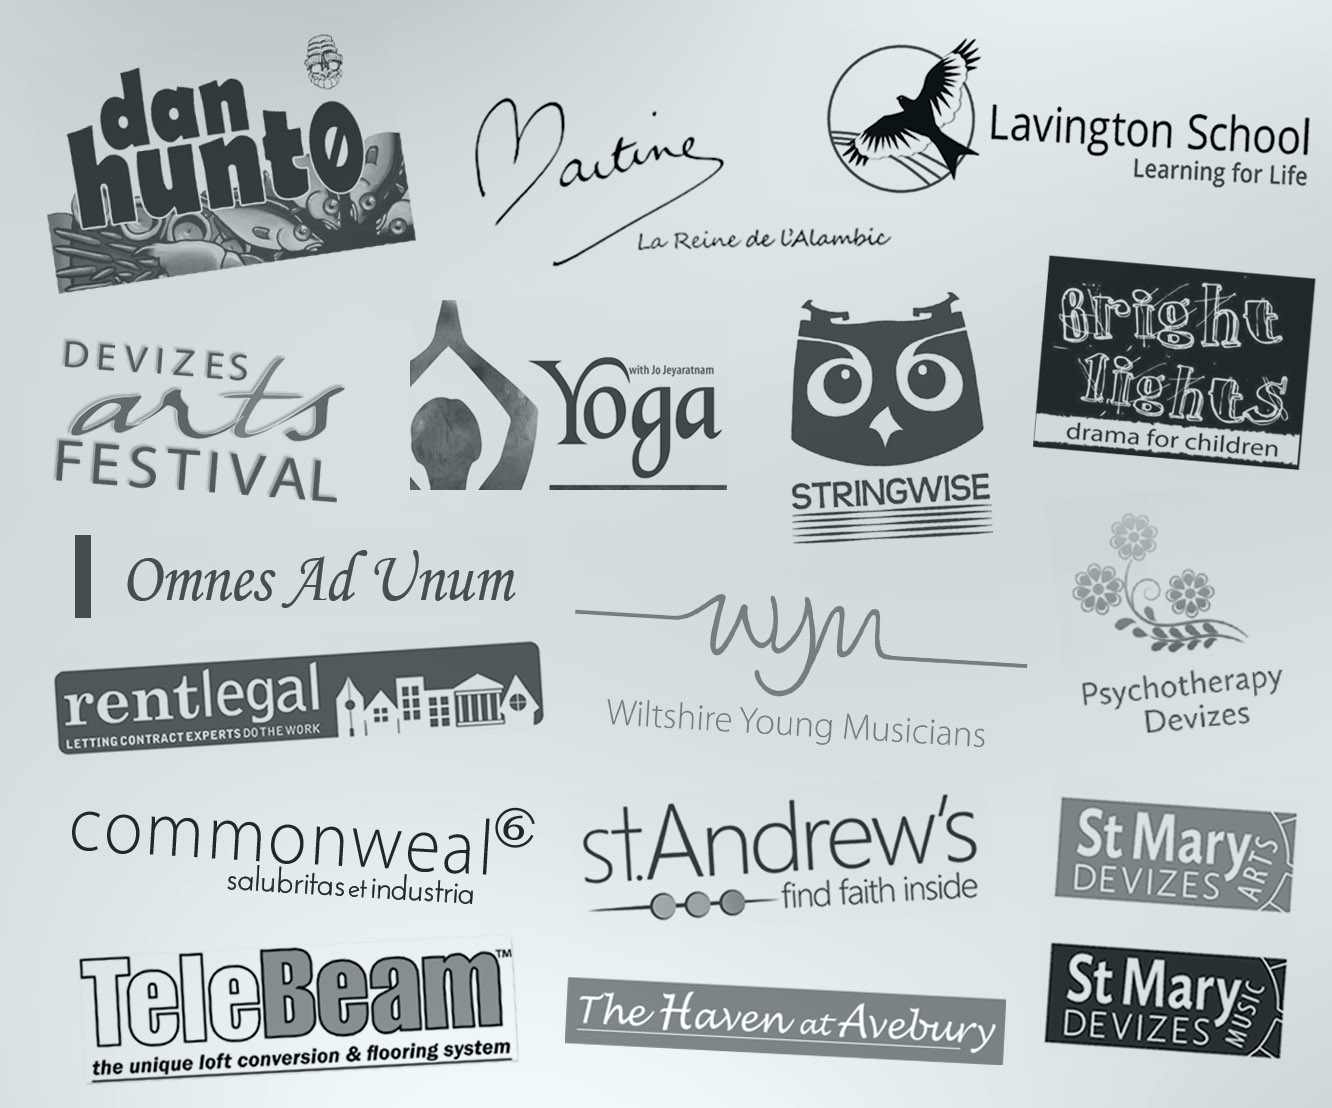 Branding for business, schools & non-profits in Wiltshire